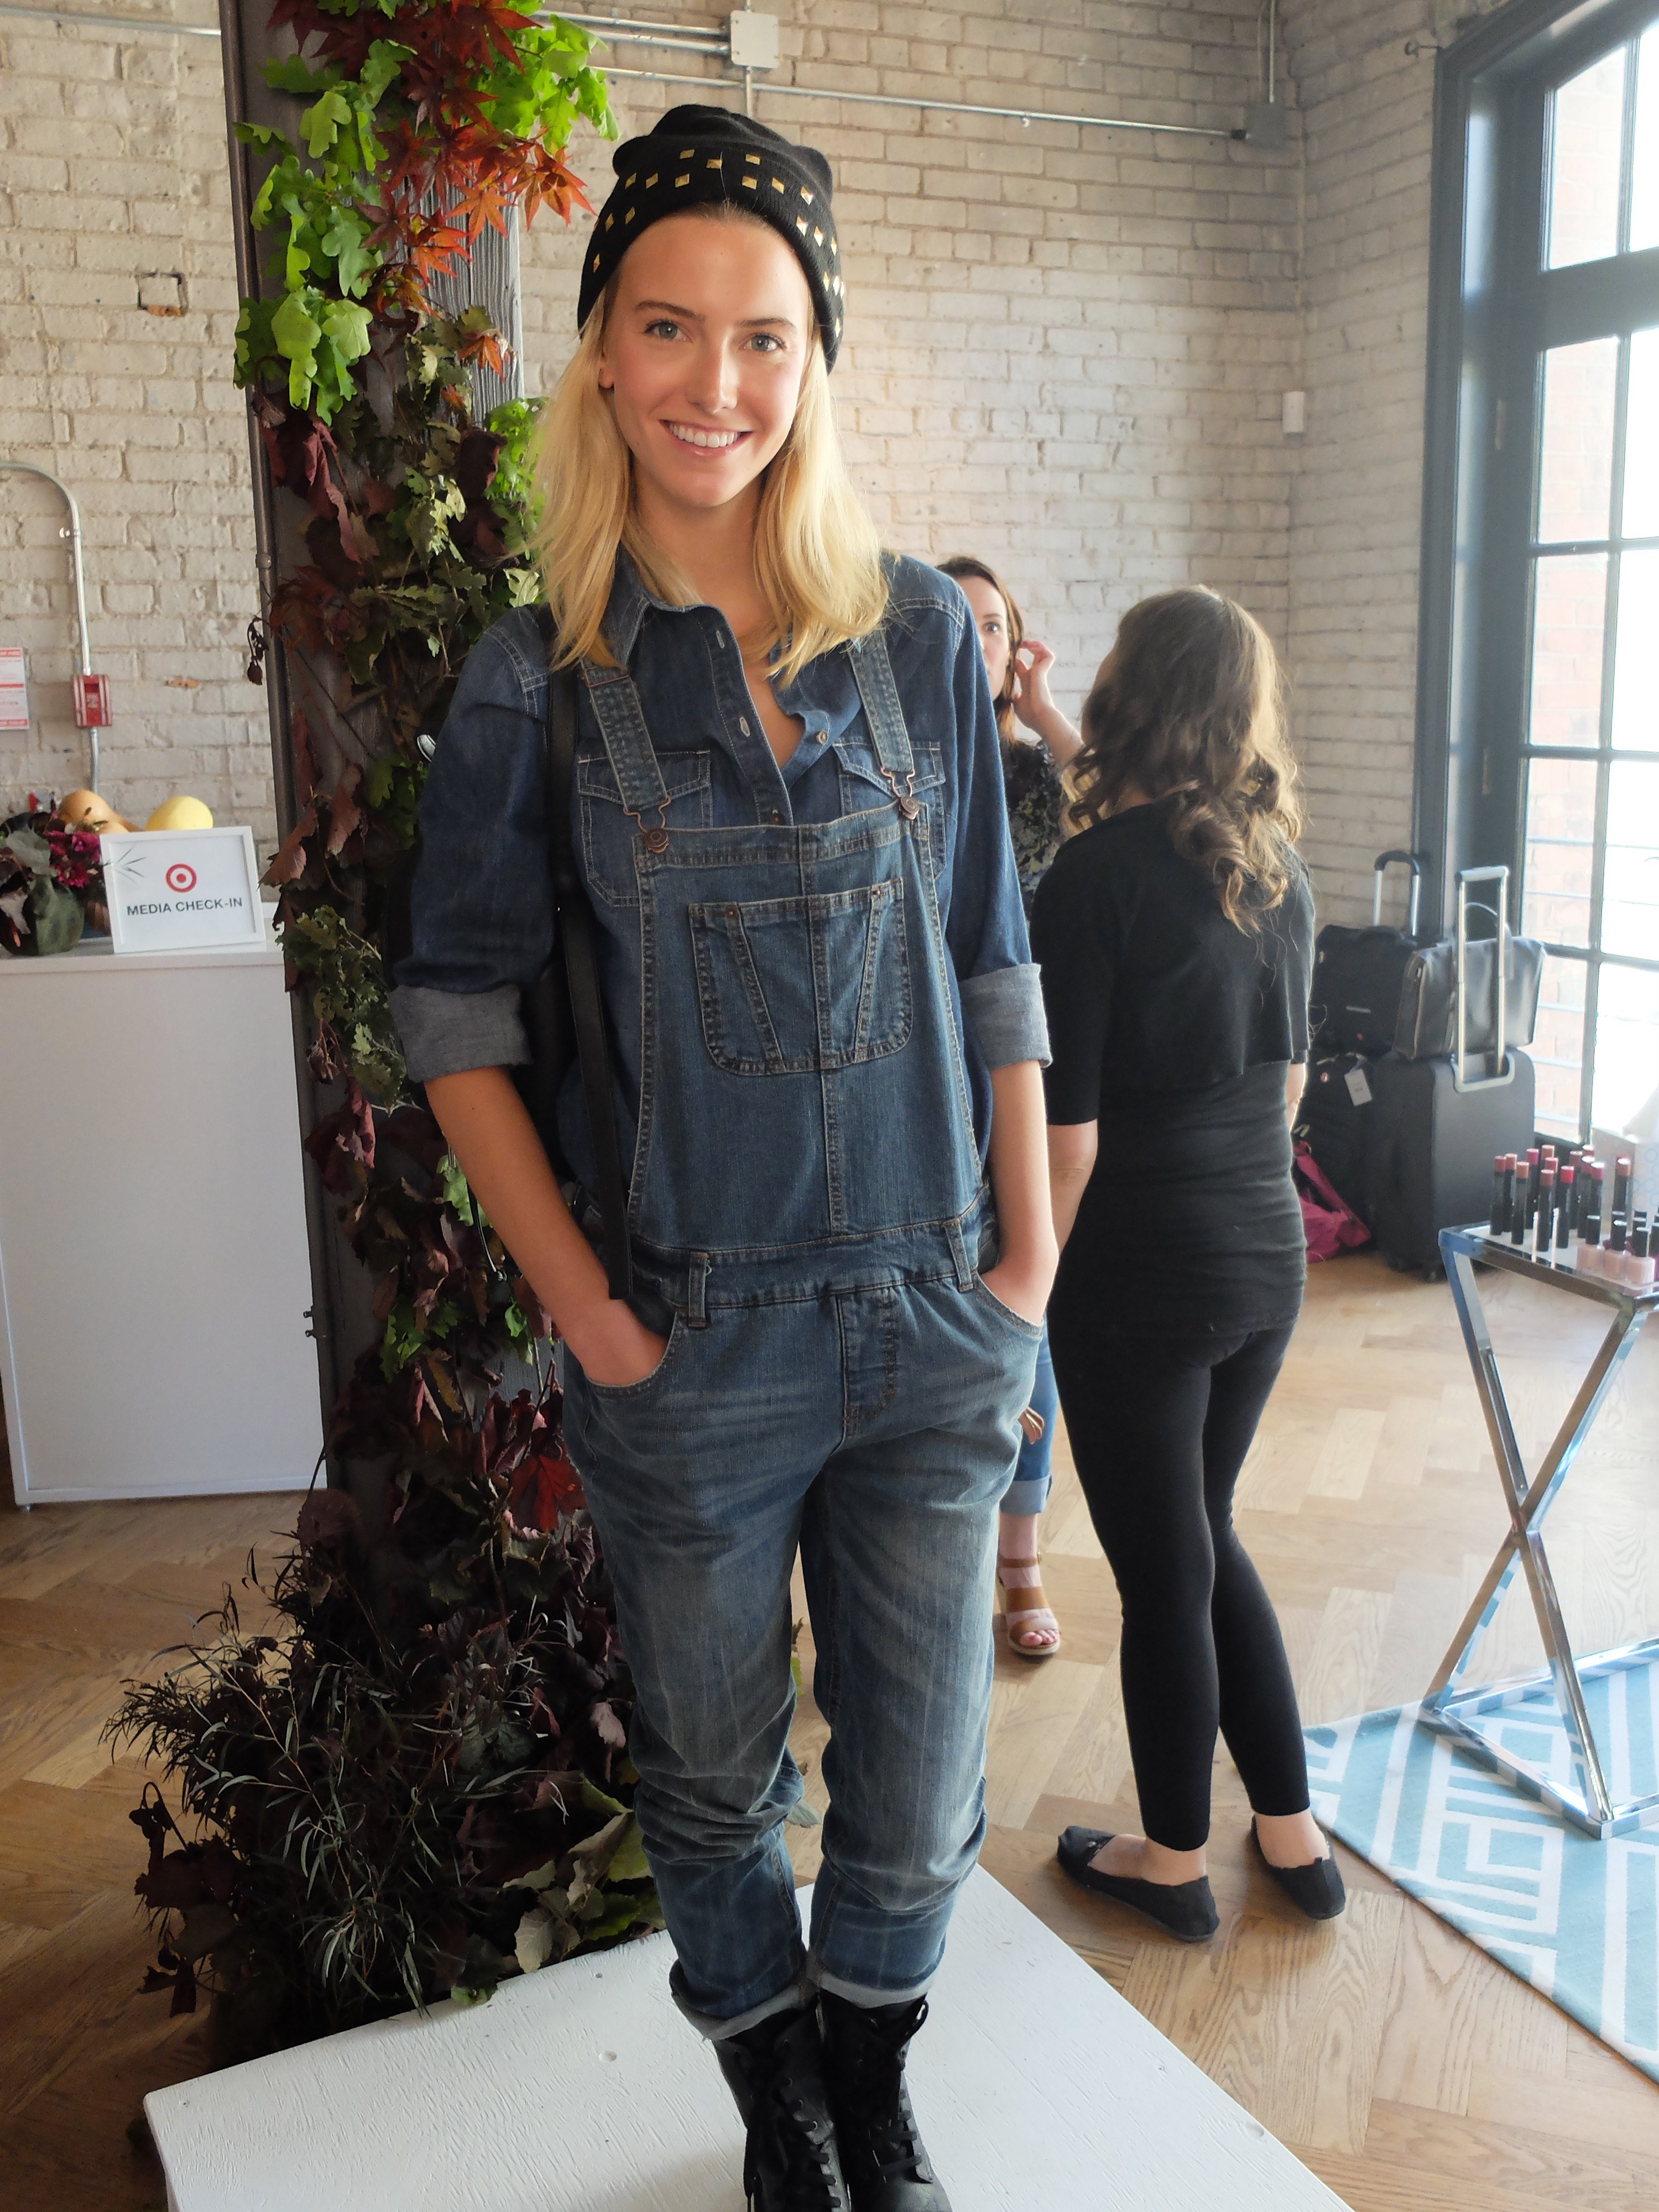 Target Canada Fall 2014 Preview - Strolling the City in Heels